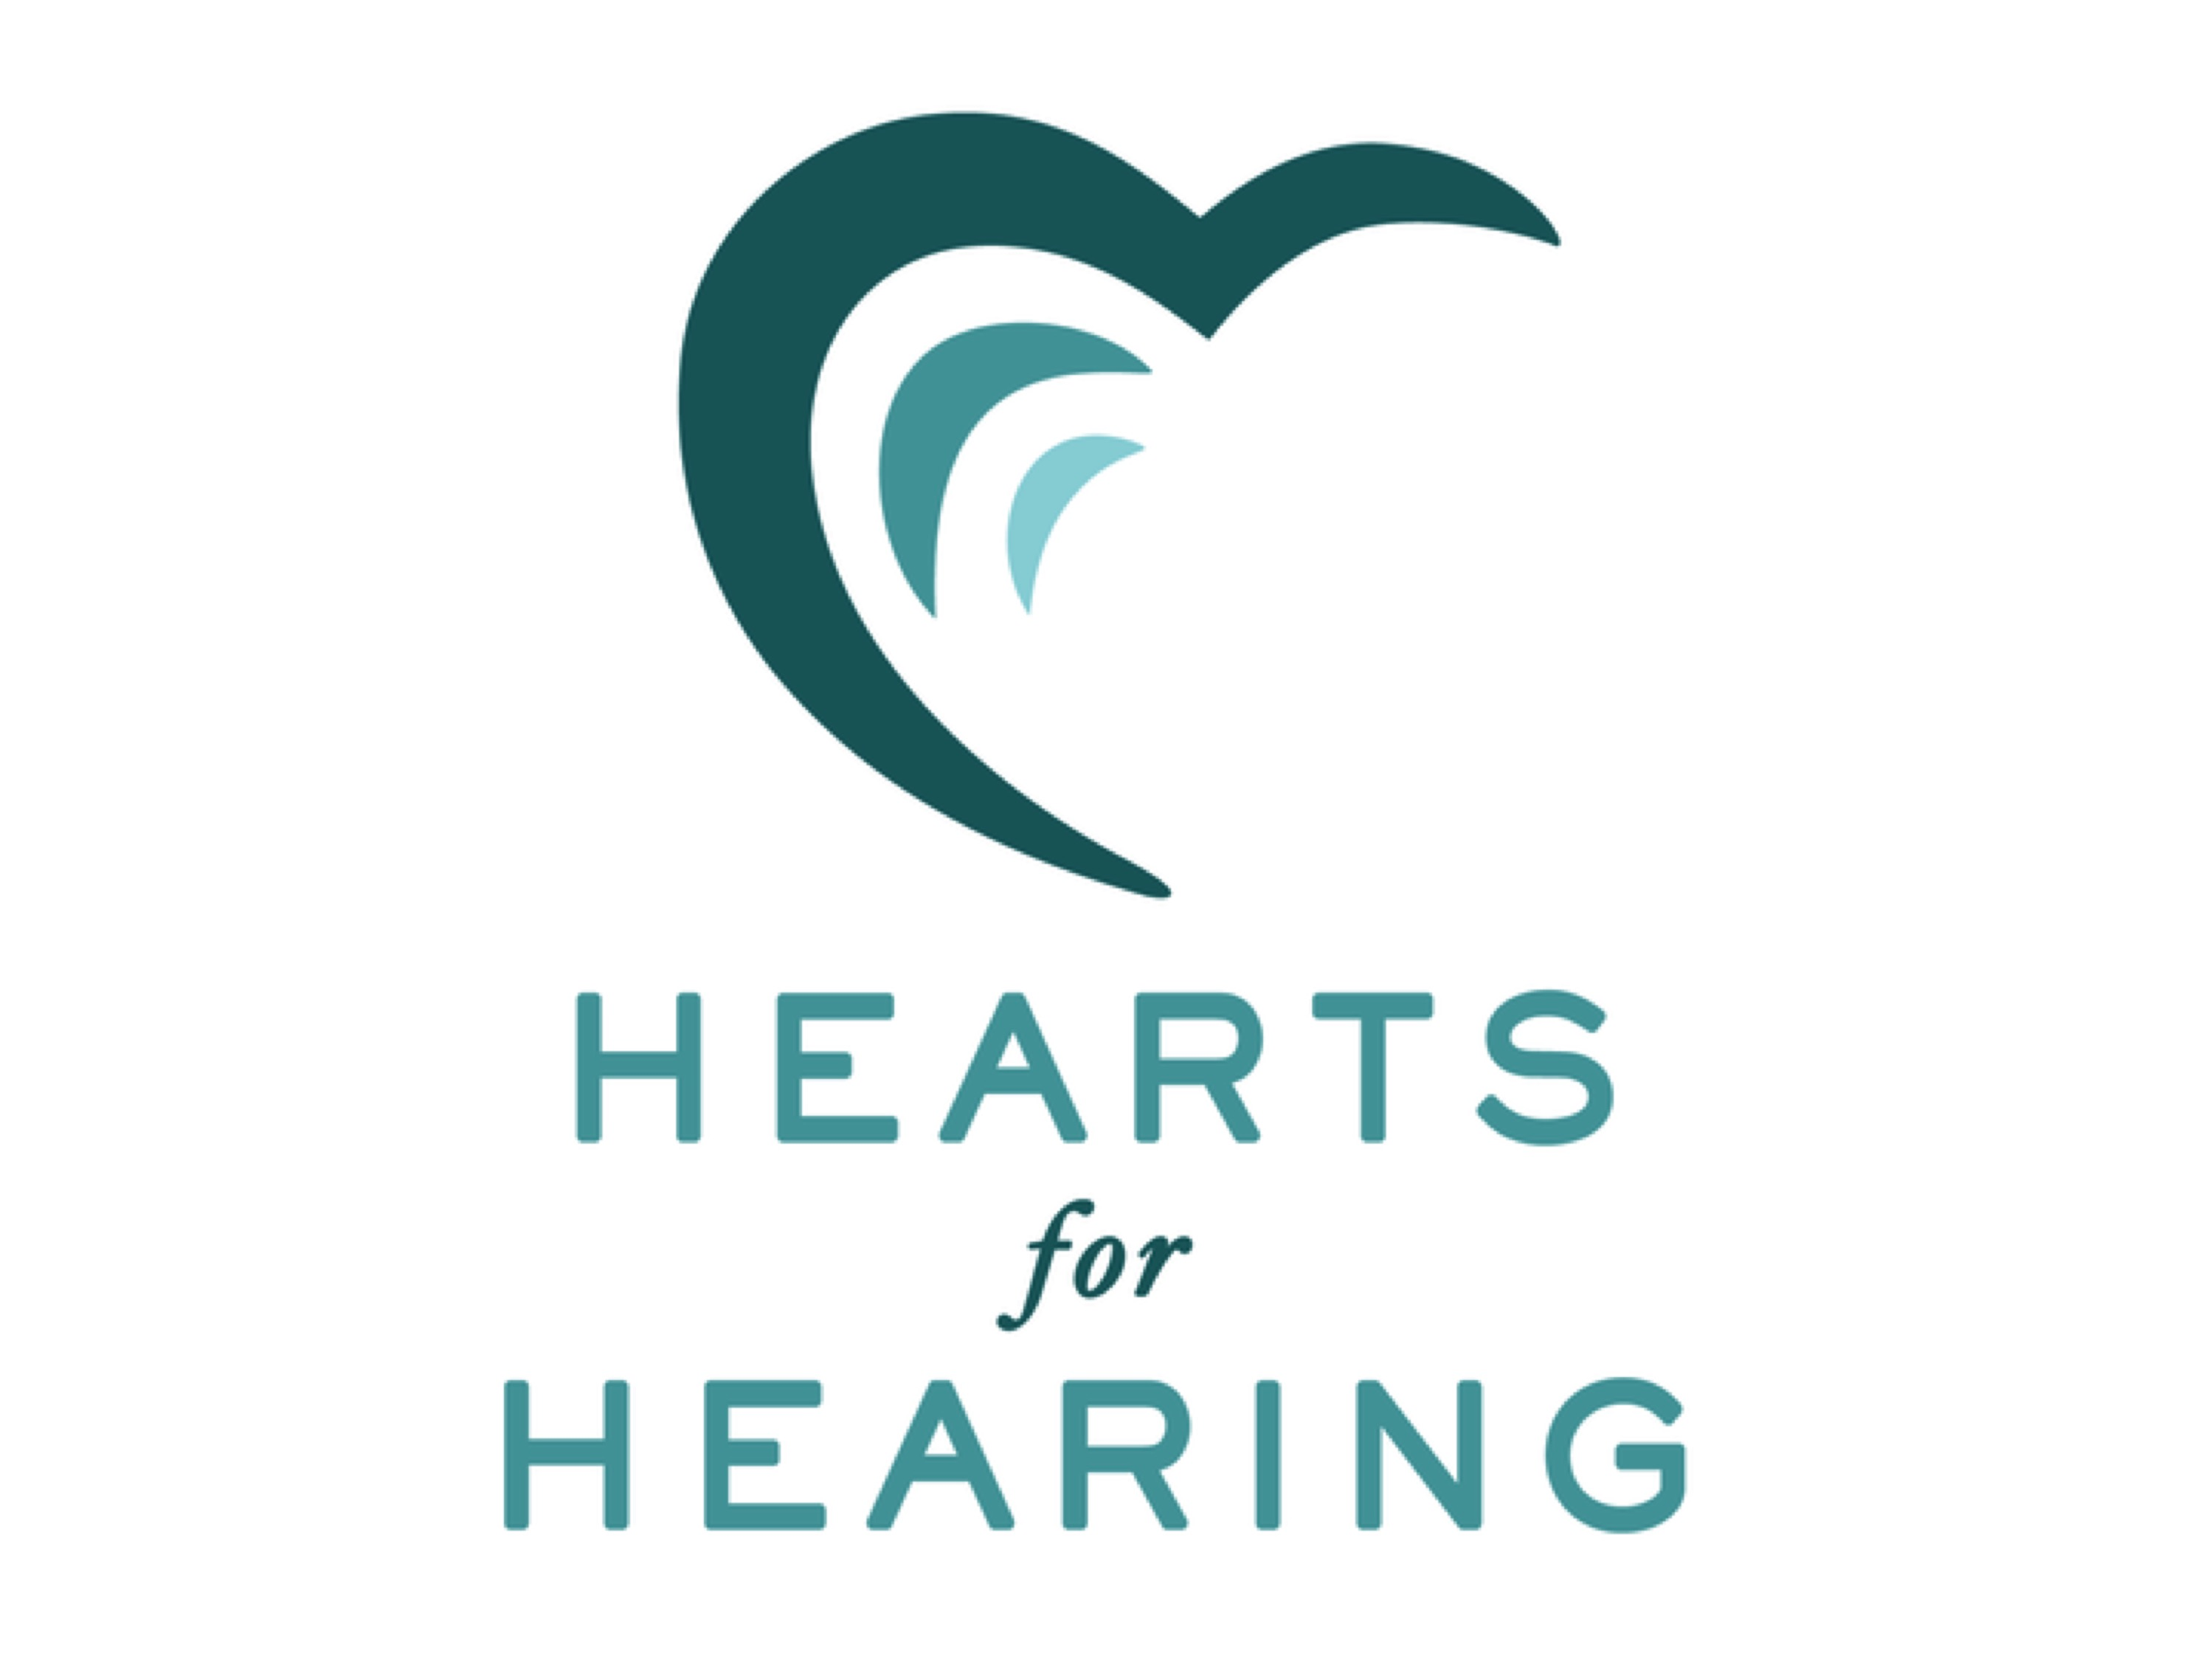 Hearts for Hearing